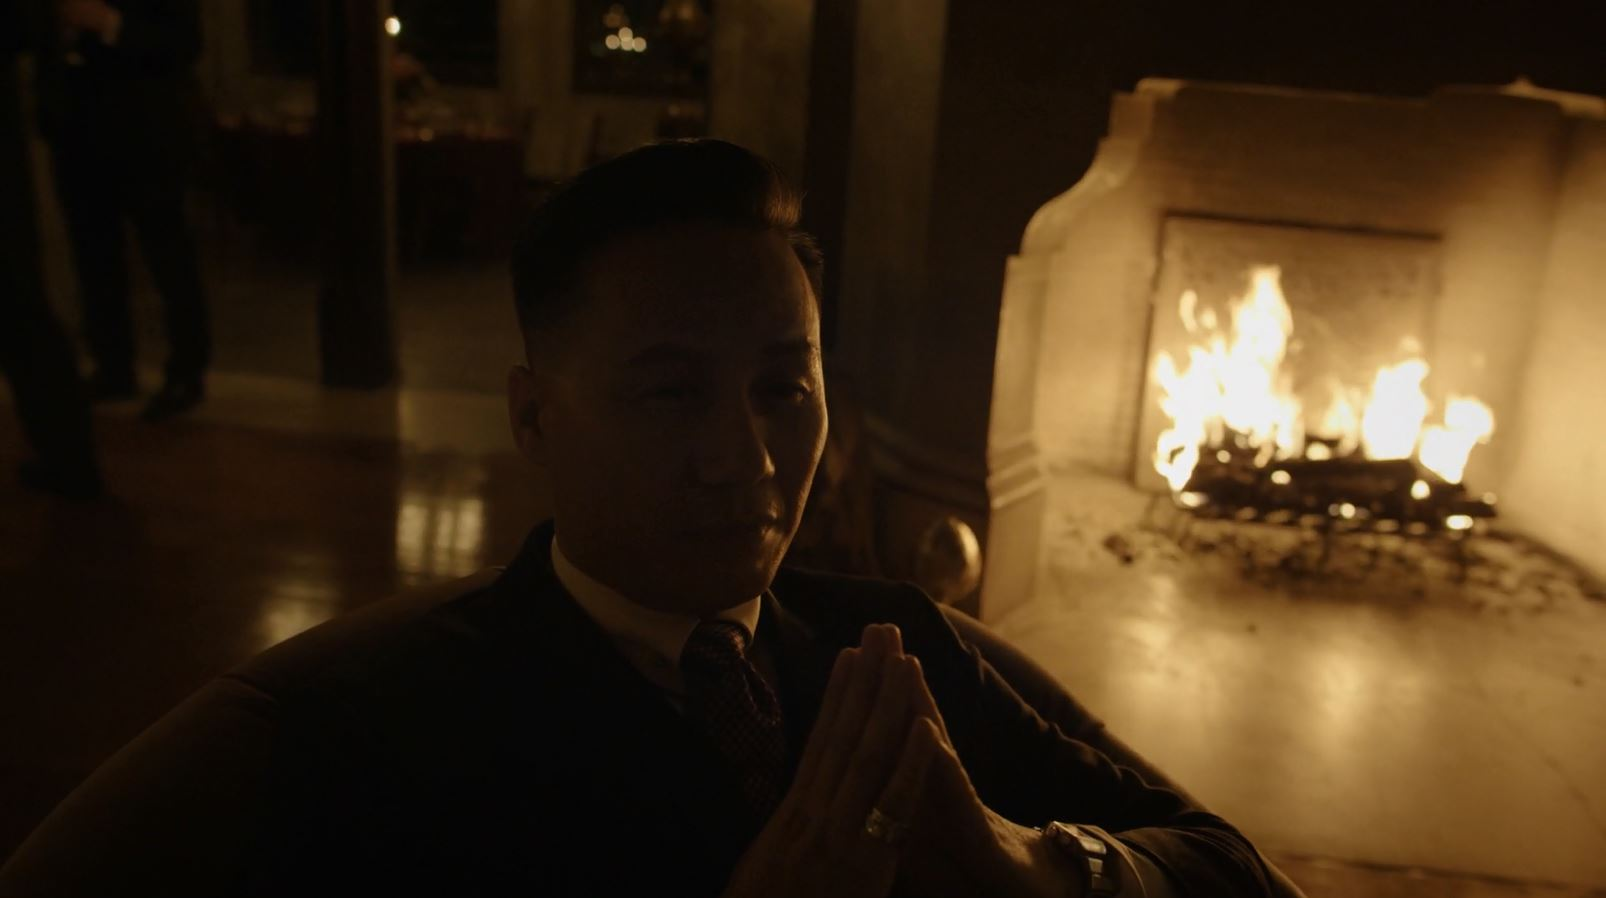 BD Wong watches rome burn - Mr. Robot Season Finale Review